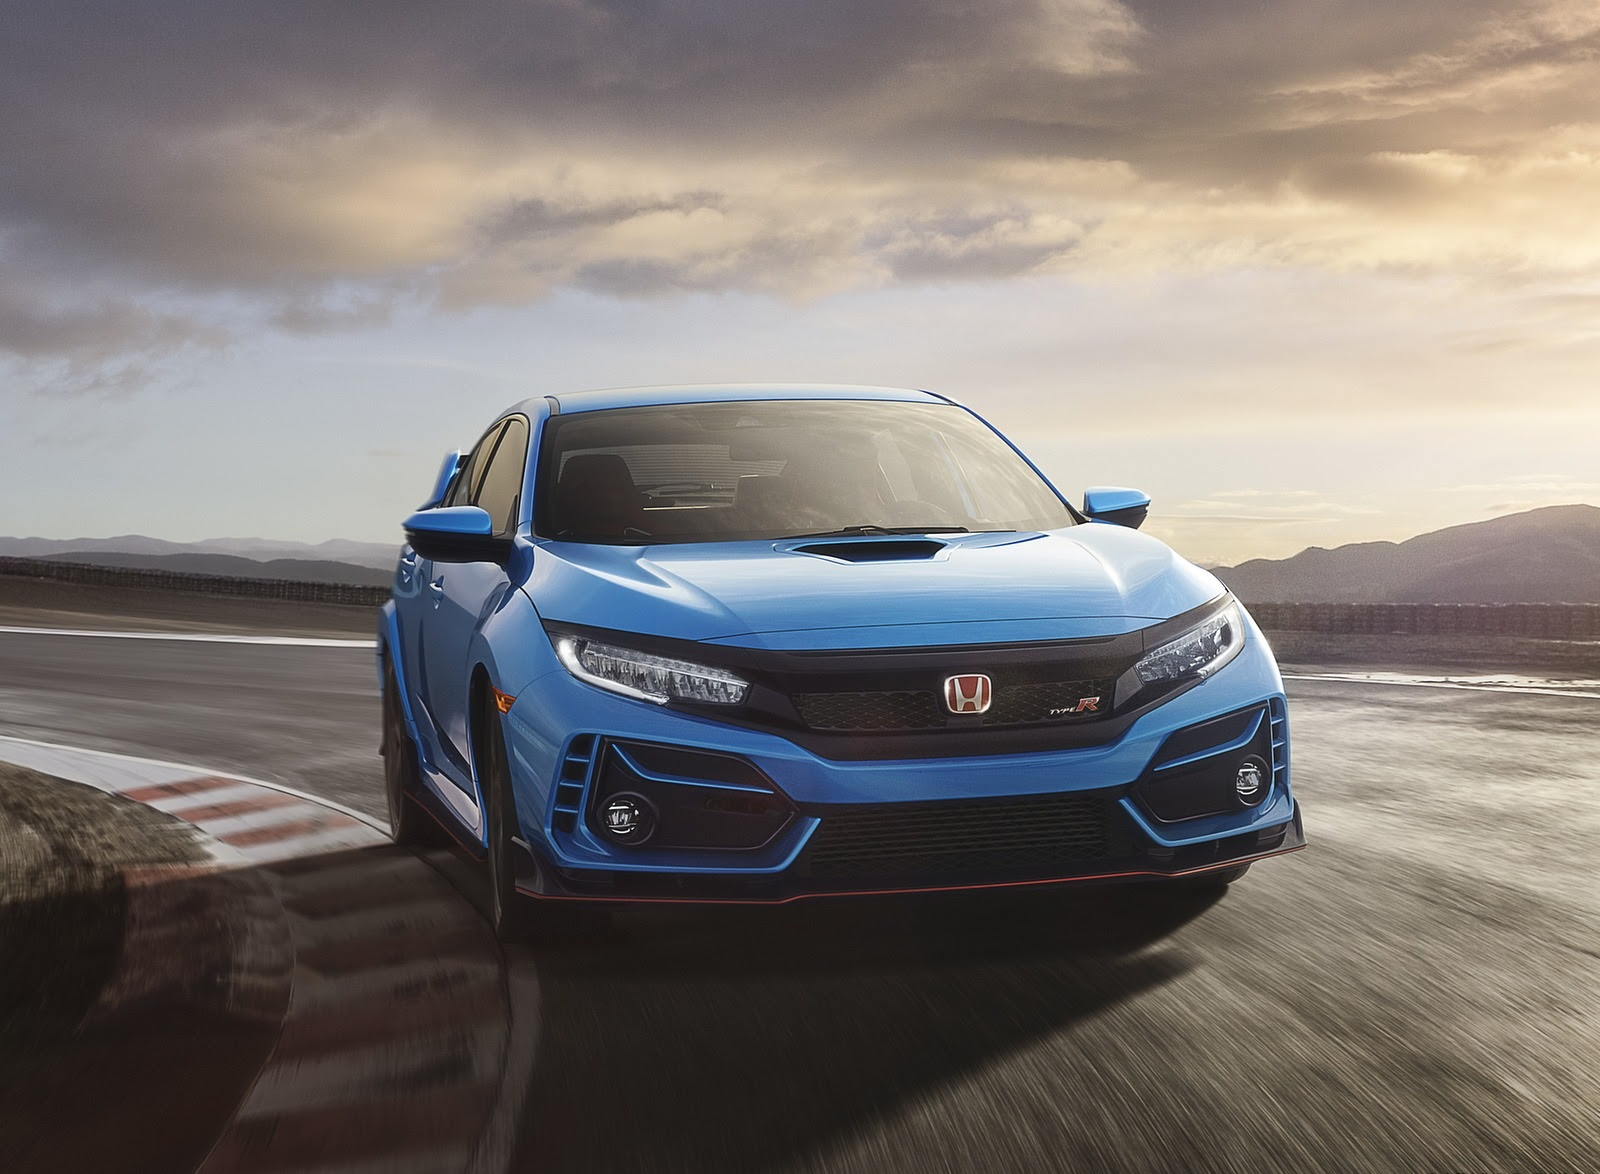 2020 Honda Civic Type R Wallpapers 32 Hd Images Newcarcars